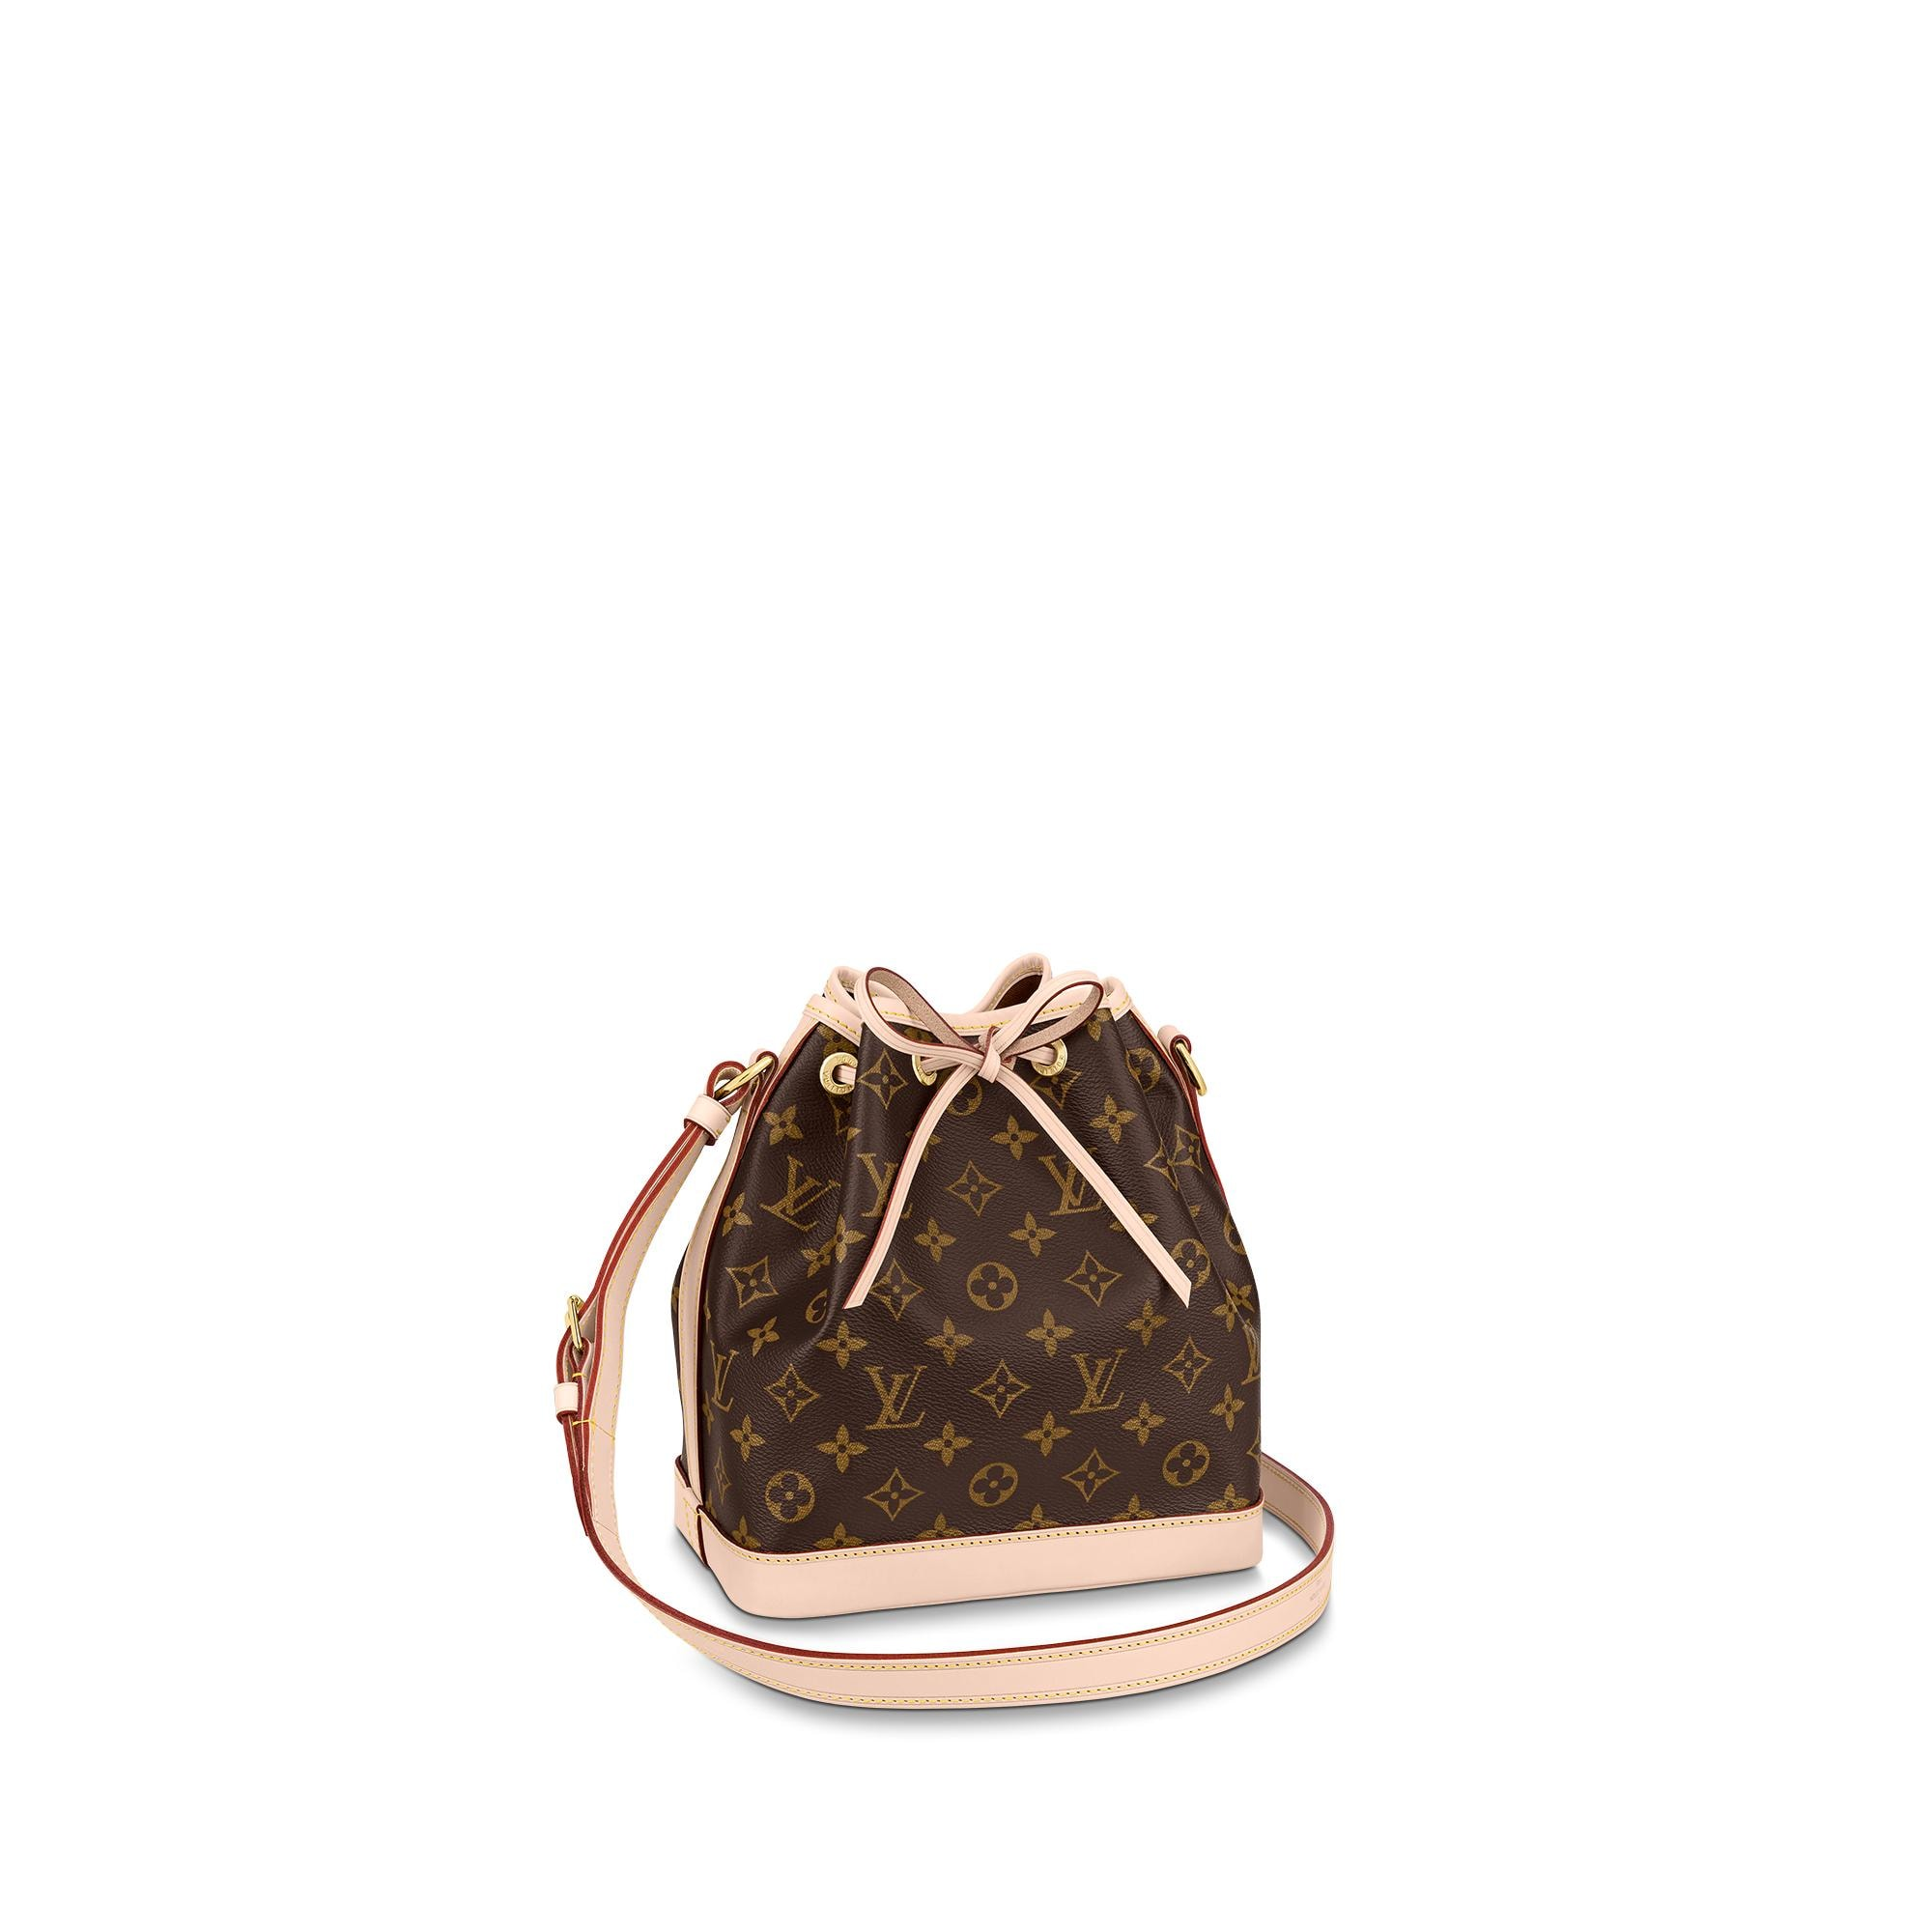 Noé BB  Monogram in Women's Handbags  collections by Louis Vuitton